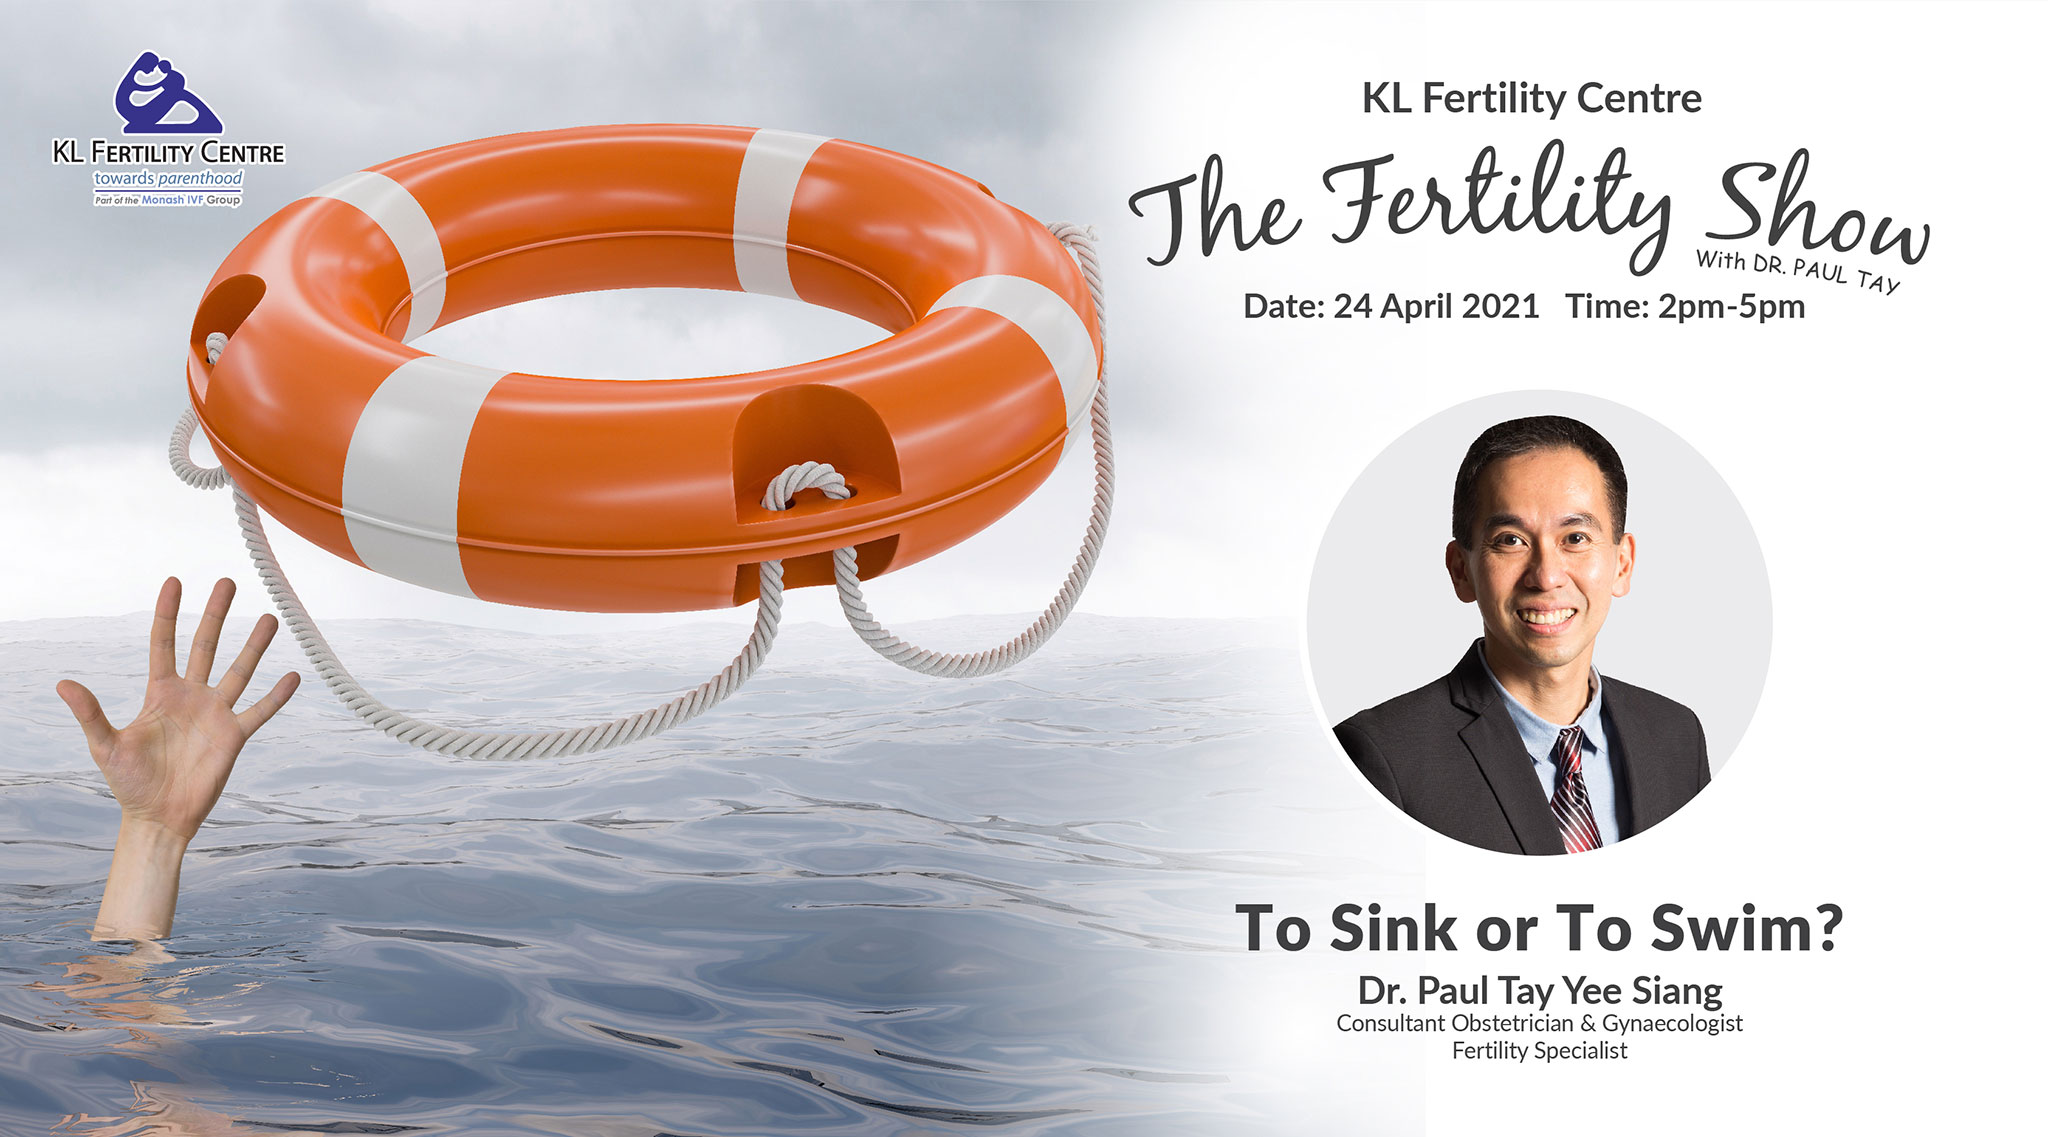 The Fertility Show : To Sink or To Swim?, 24 April 2021 - Dr. Paul Tay